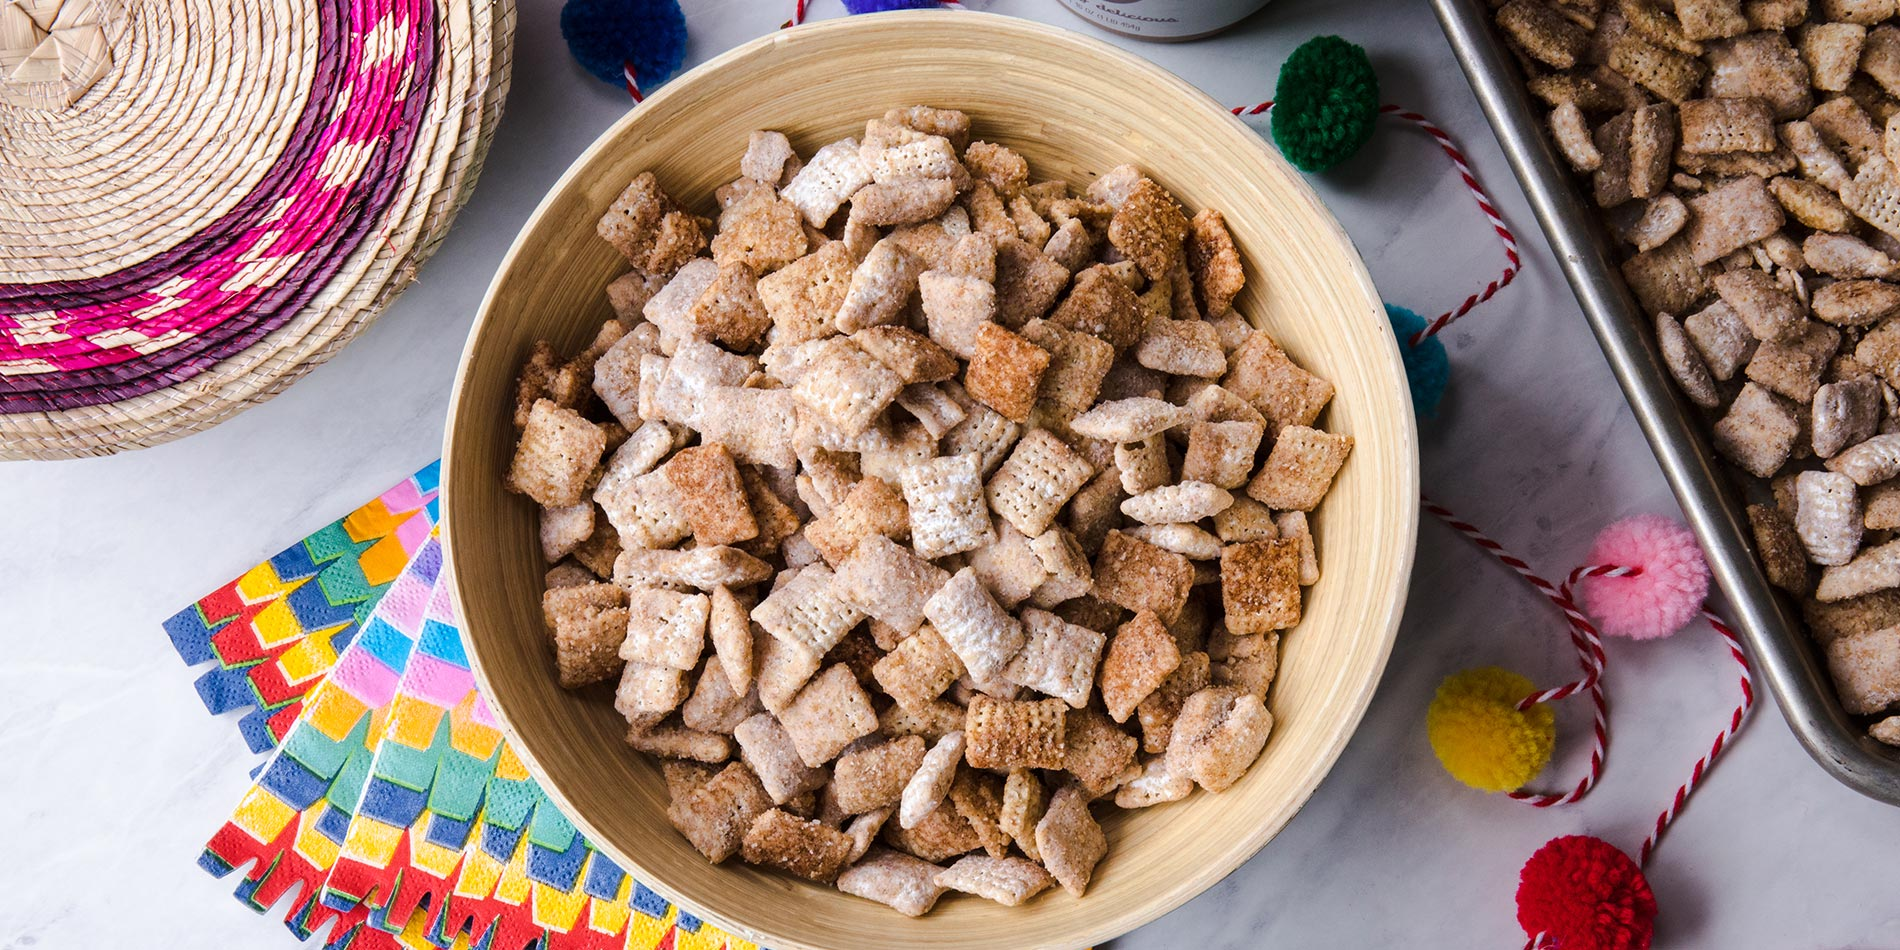 Bowl filled with Almond Butter Churro Puppy Chow atop marble countertop with decorative paper underneath